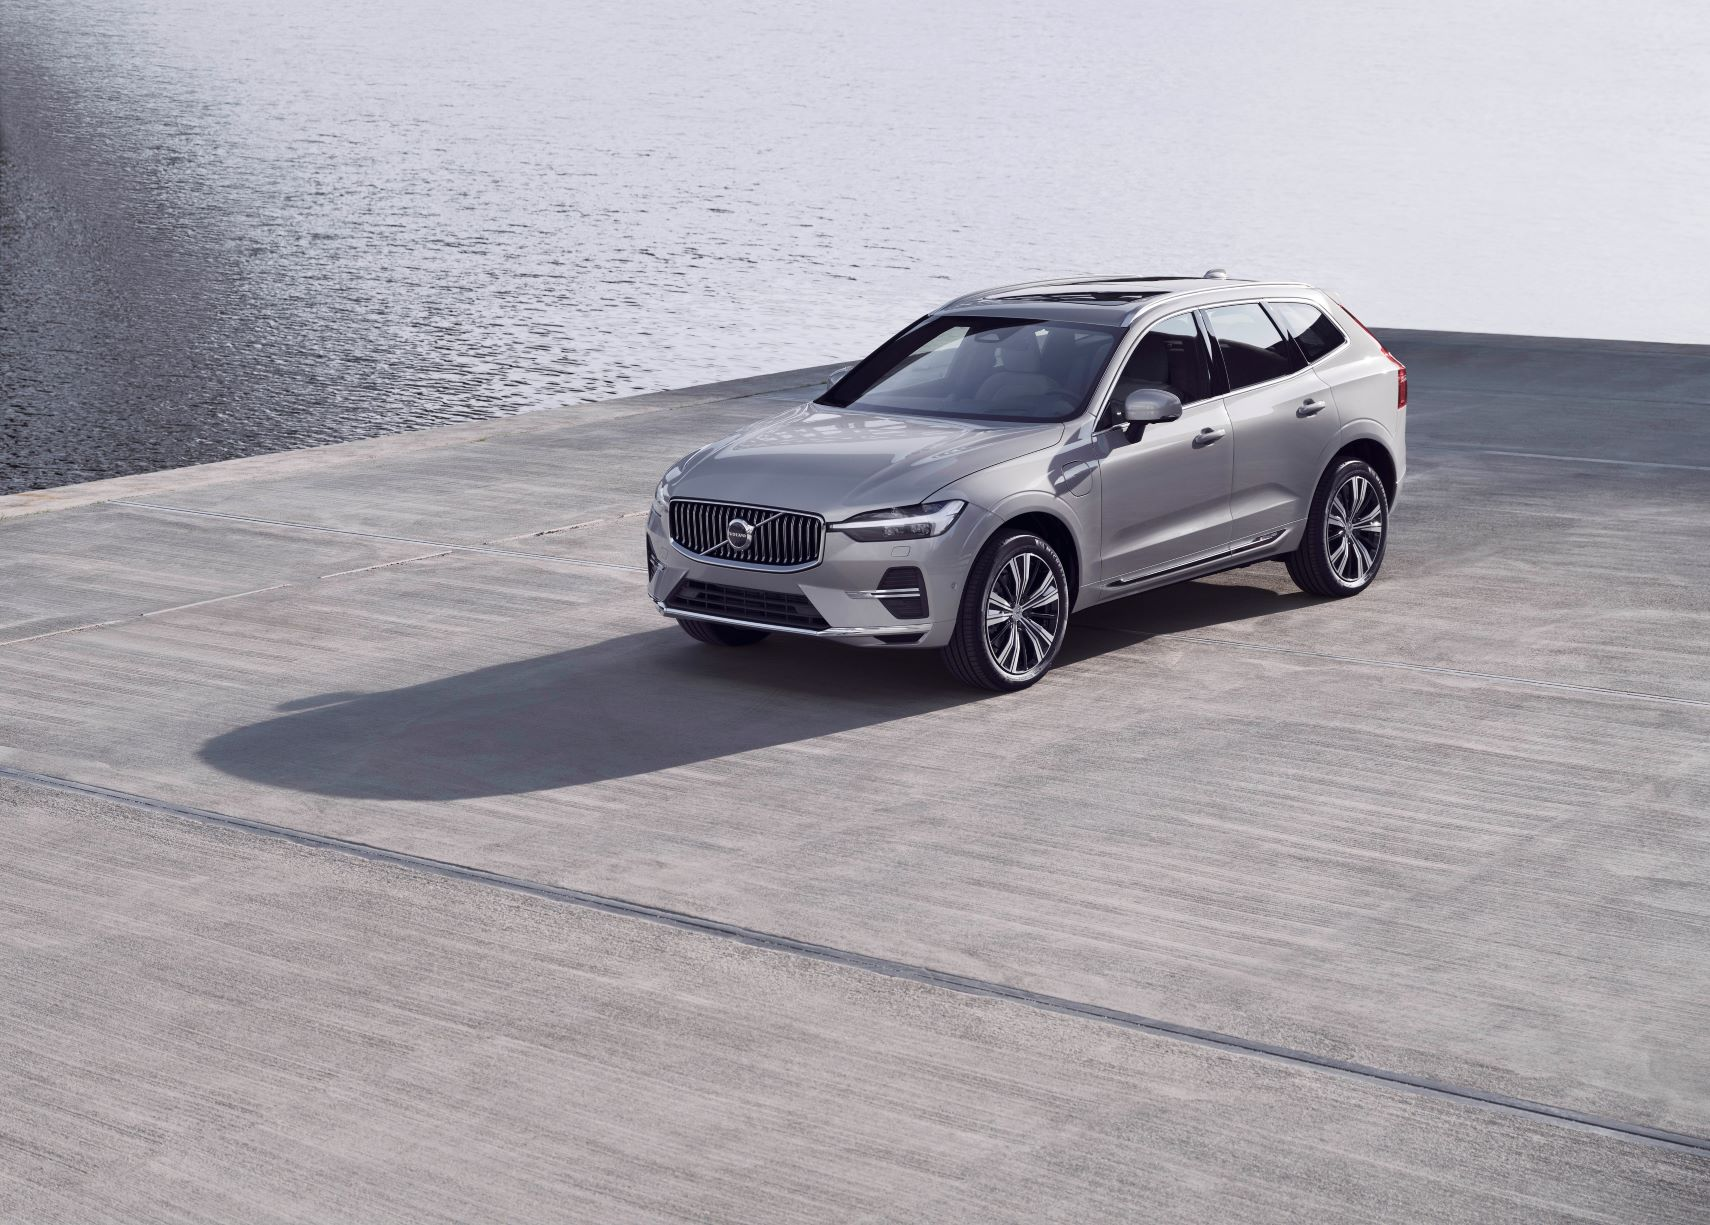 Purchase a new Volvo XC60 or XC90 before September 30 and you will receive 5 years / 75,000 km complimentary scheduled servicing^. Also receive our standard 5 years unlimited km warranty*.